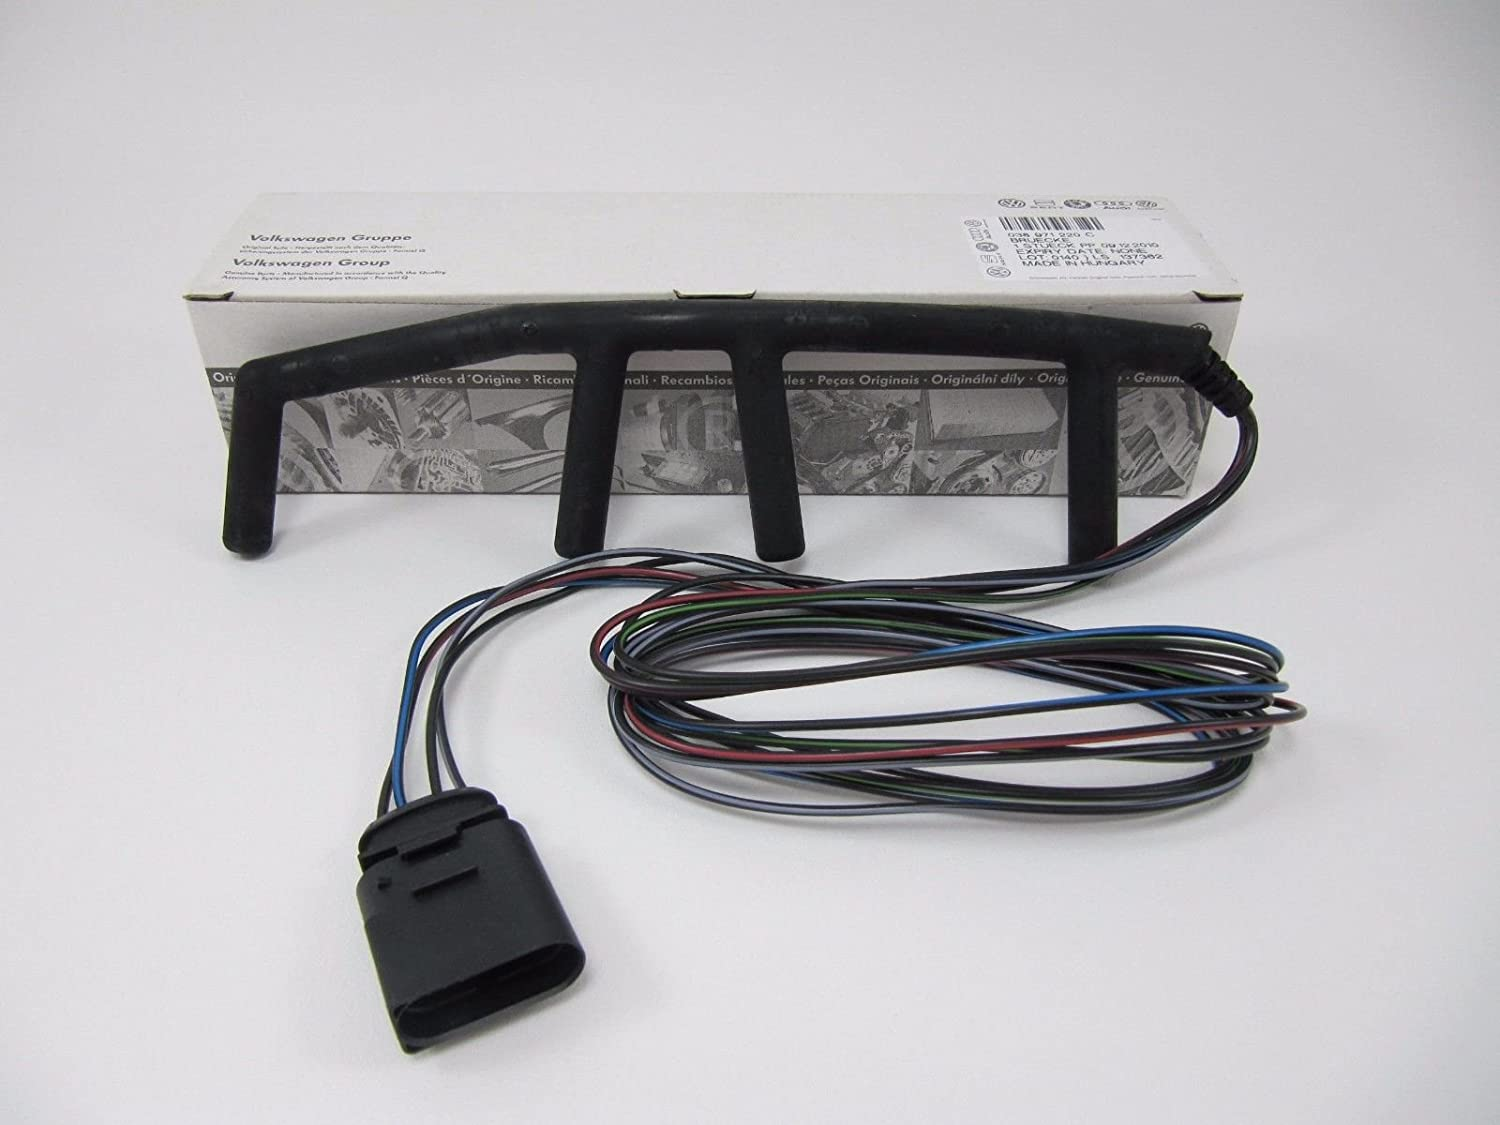 Tdi Glow Plug Harness Wire Wiring Genuine New Golf Jetta Beetle Automotive 1500x1125